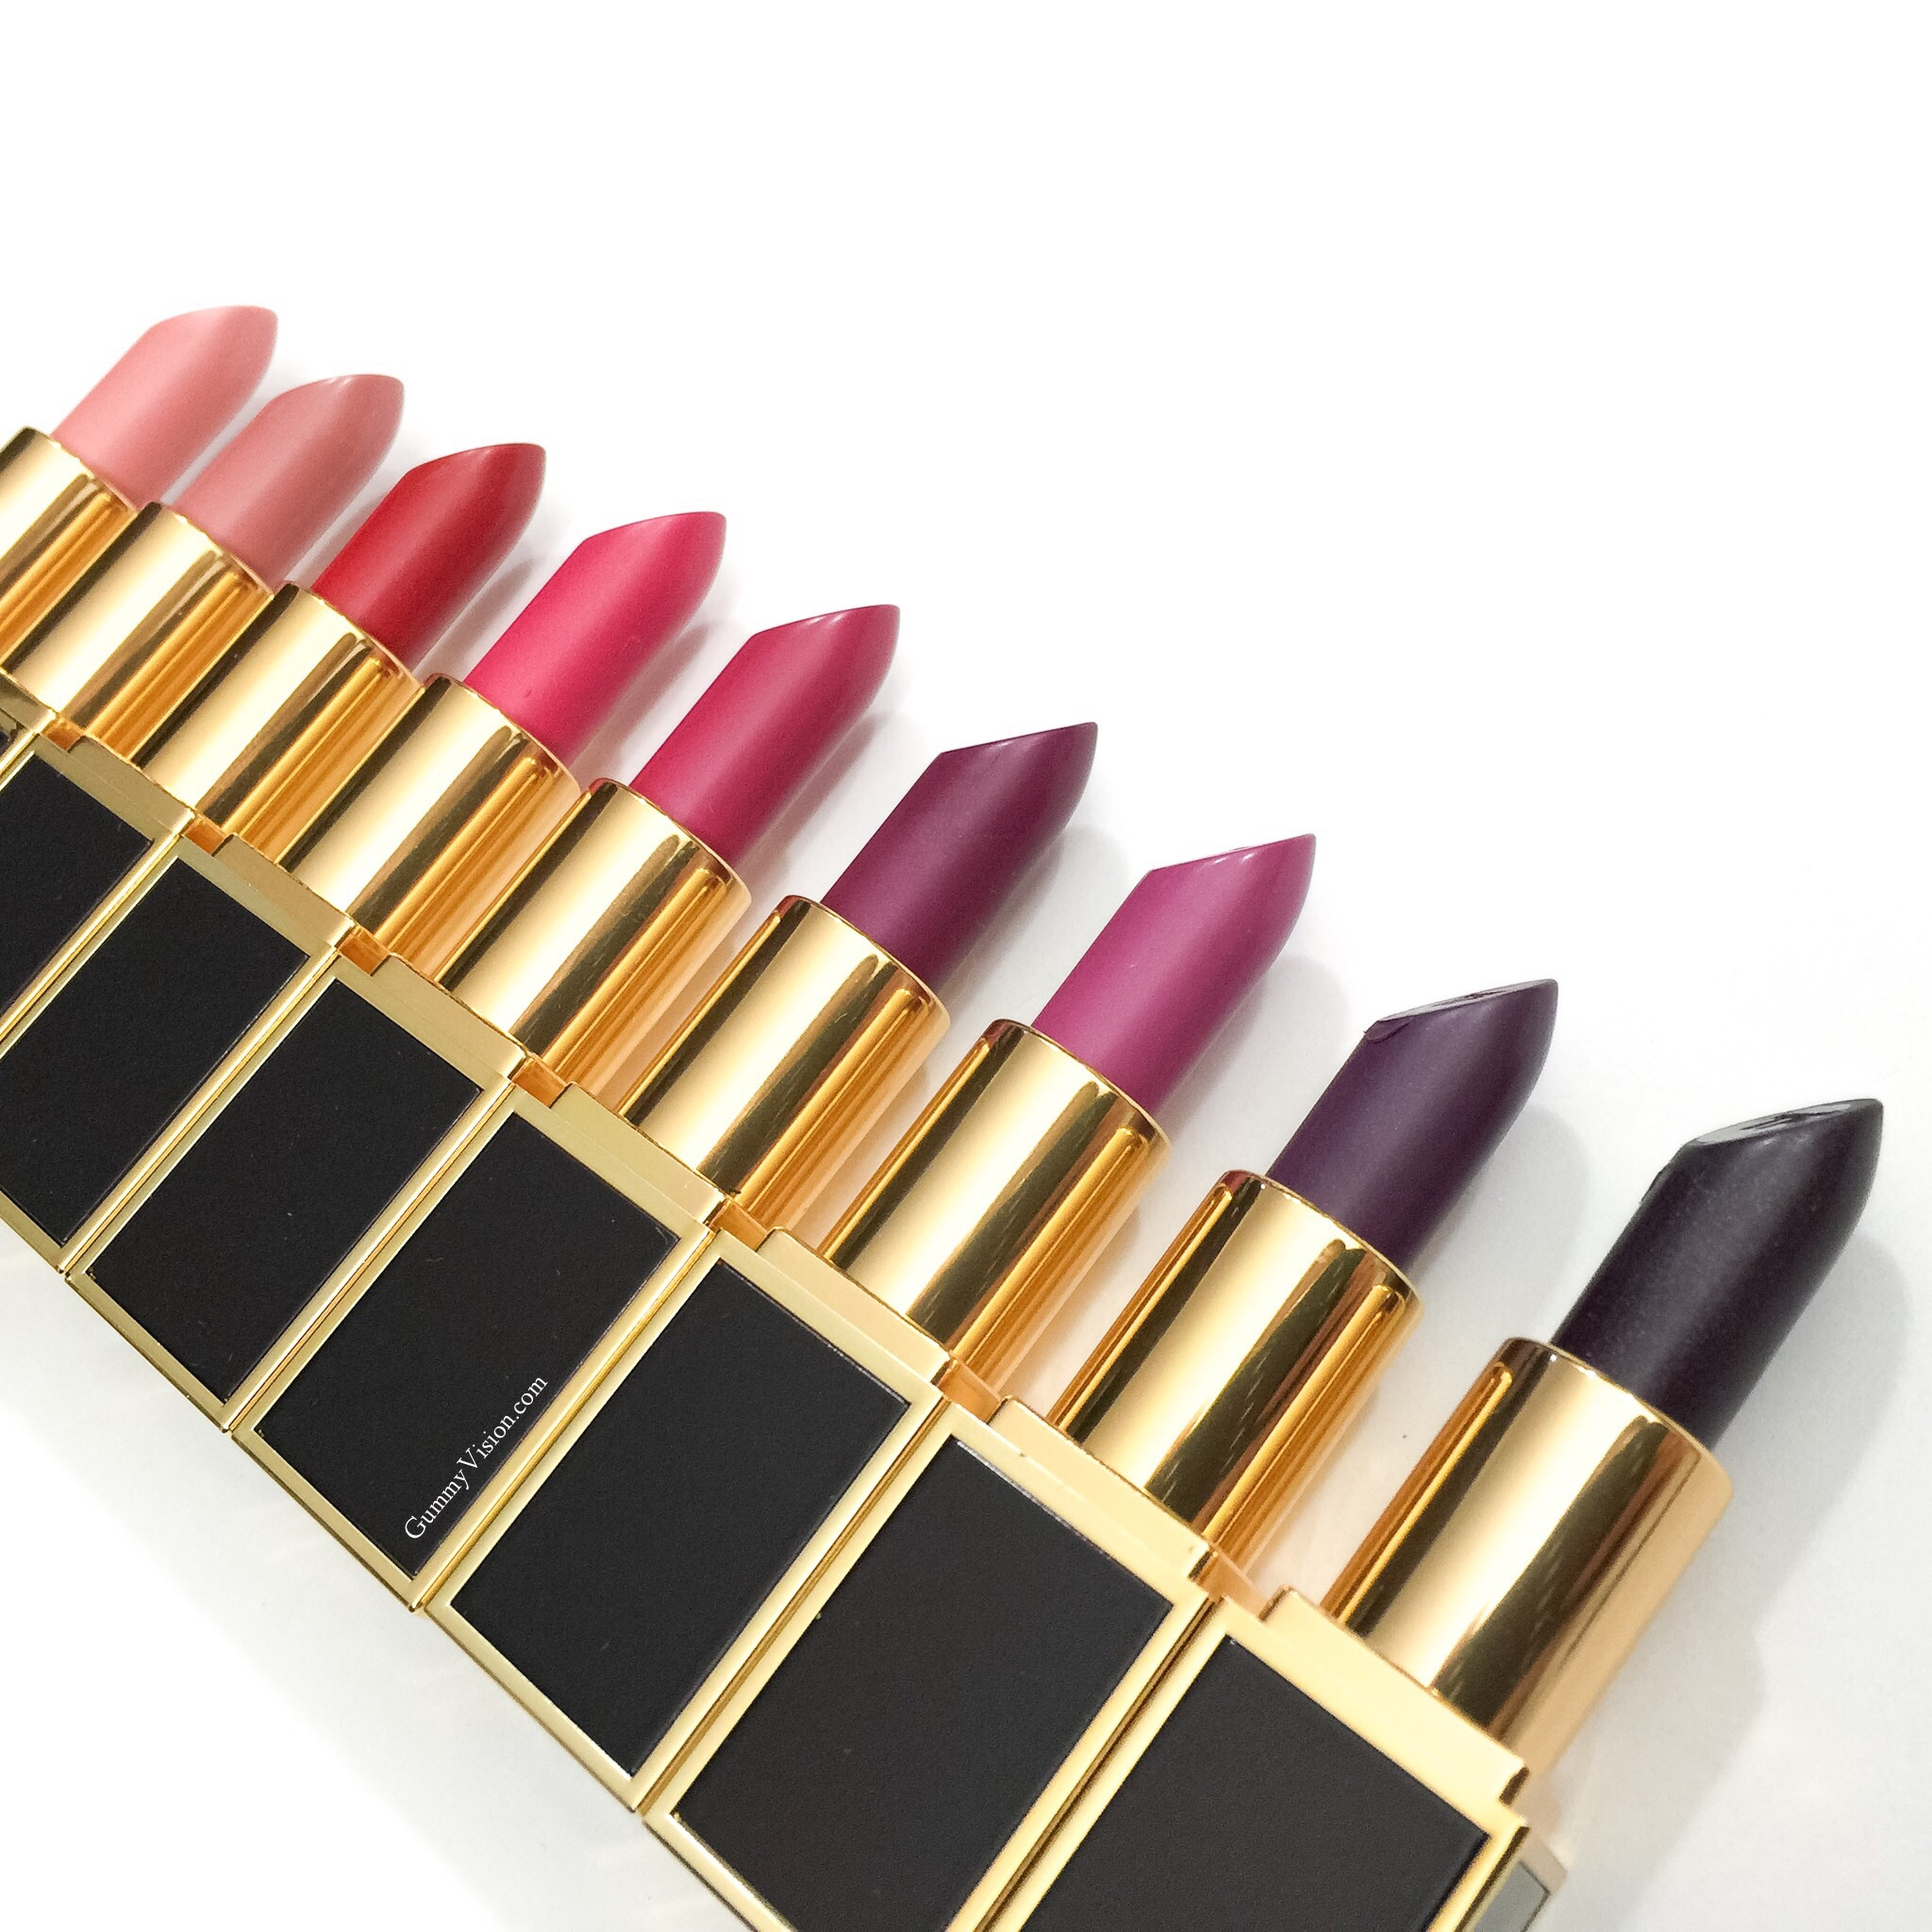 Tom Ford Lips & Boys (top to bottom) in Flynn, Addison, Luciano, Cooper, Francesco, Xavier, Jack, Liam, Alasdhair - www.gummyvision.com